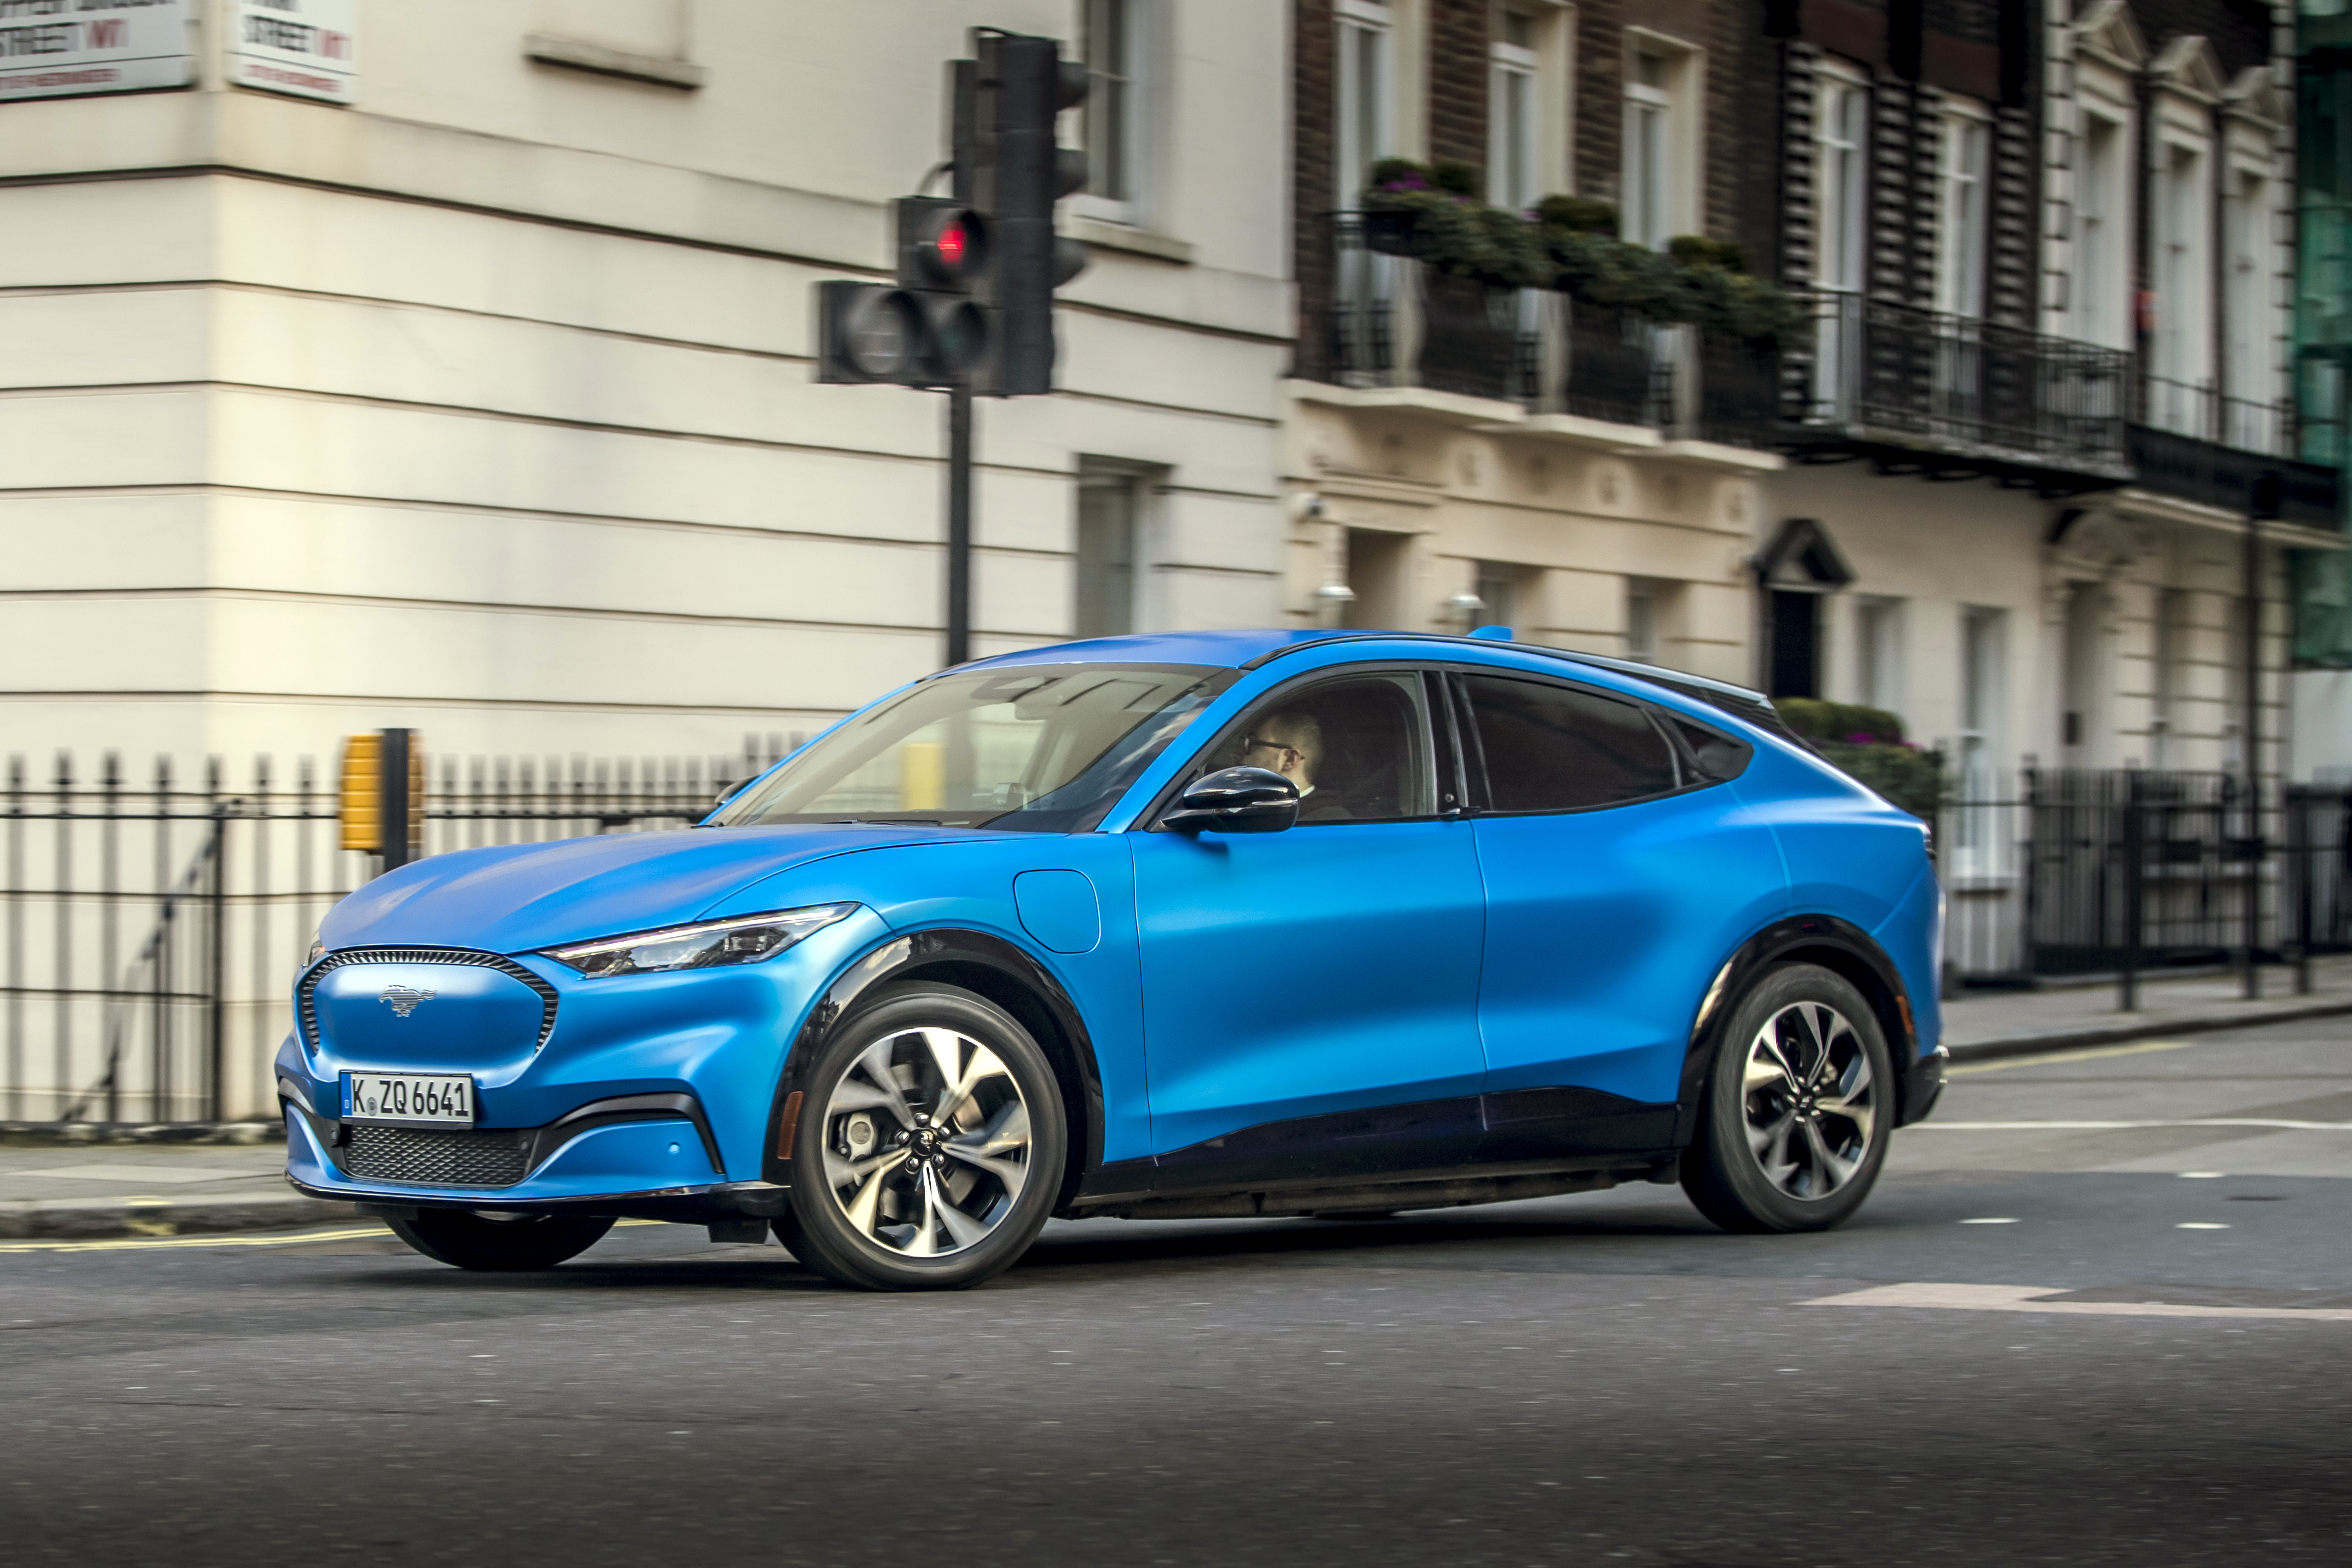 Ford's electric car the Mustang Mach-E SUV